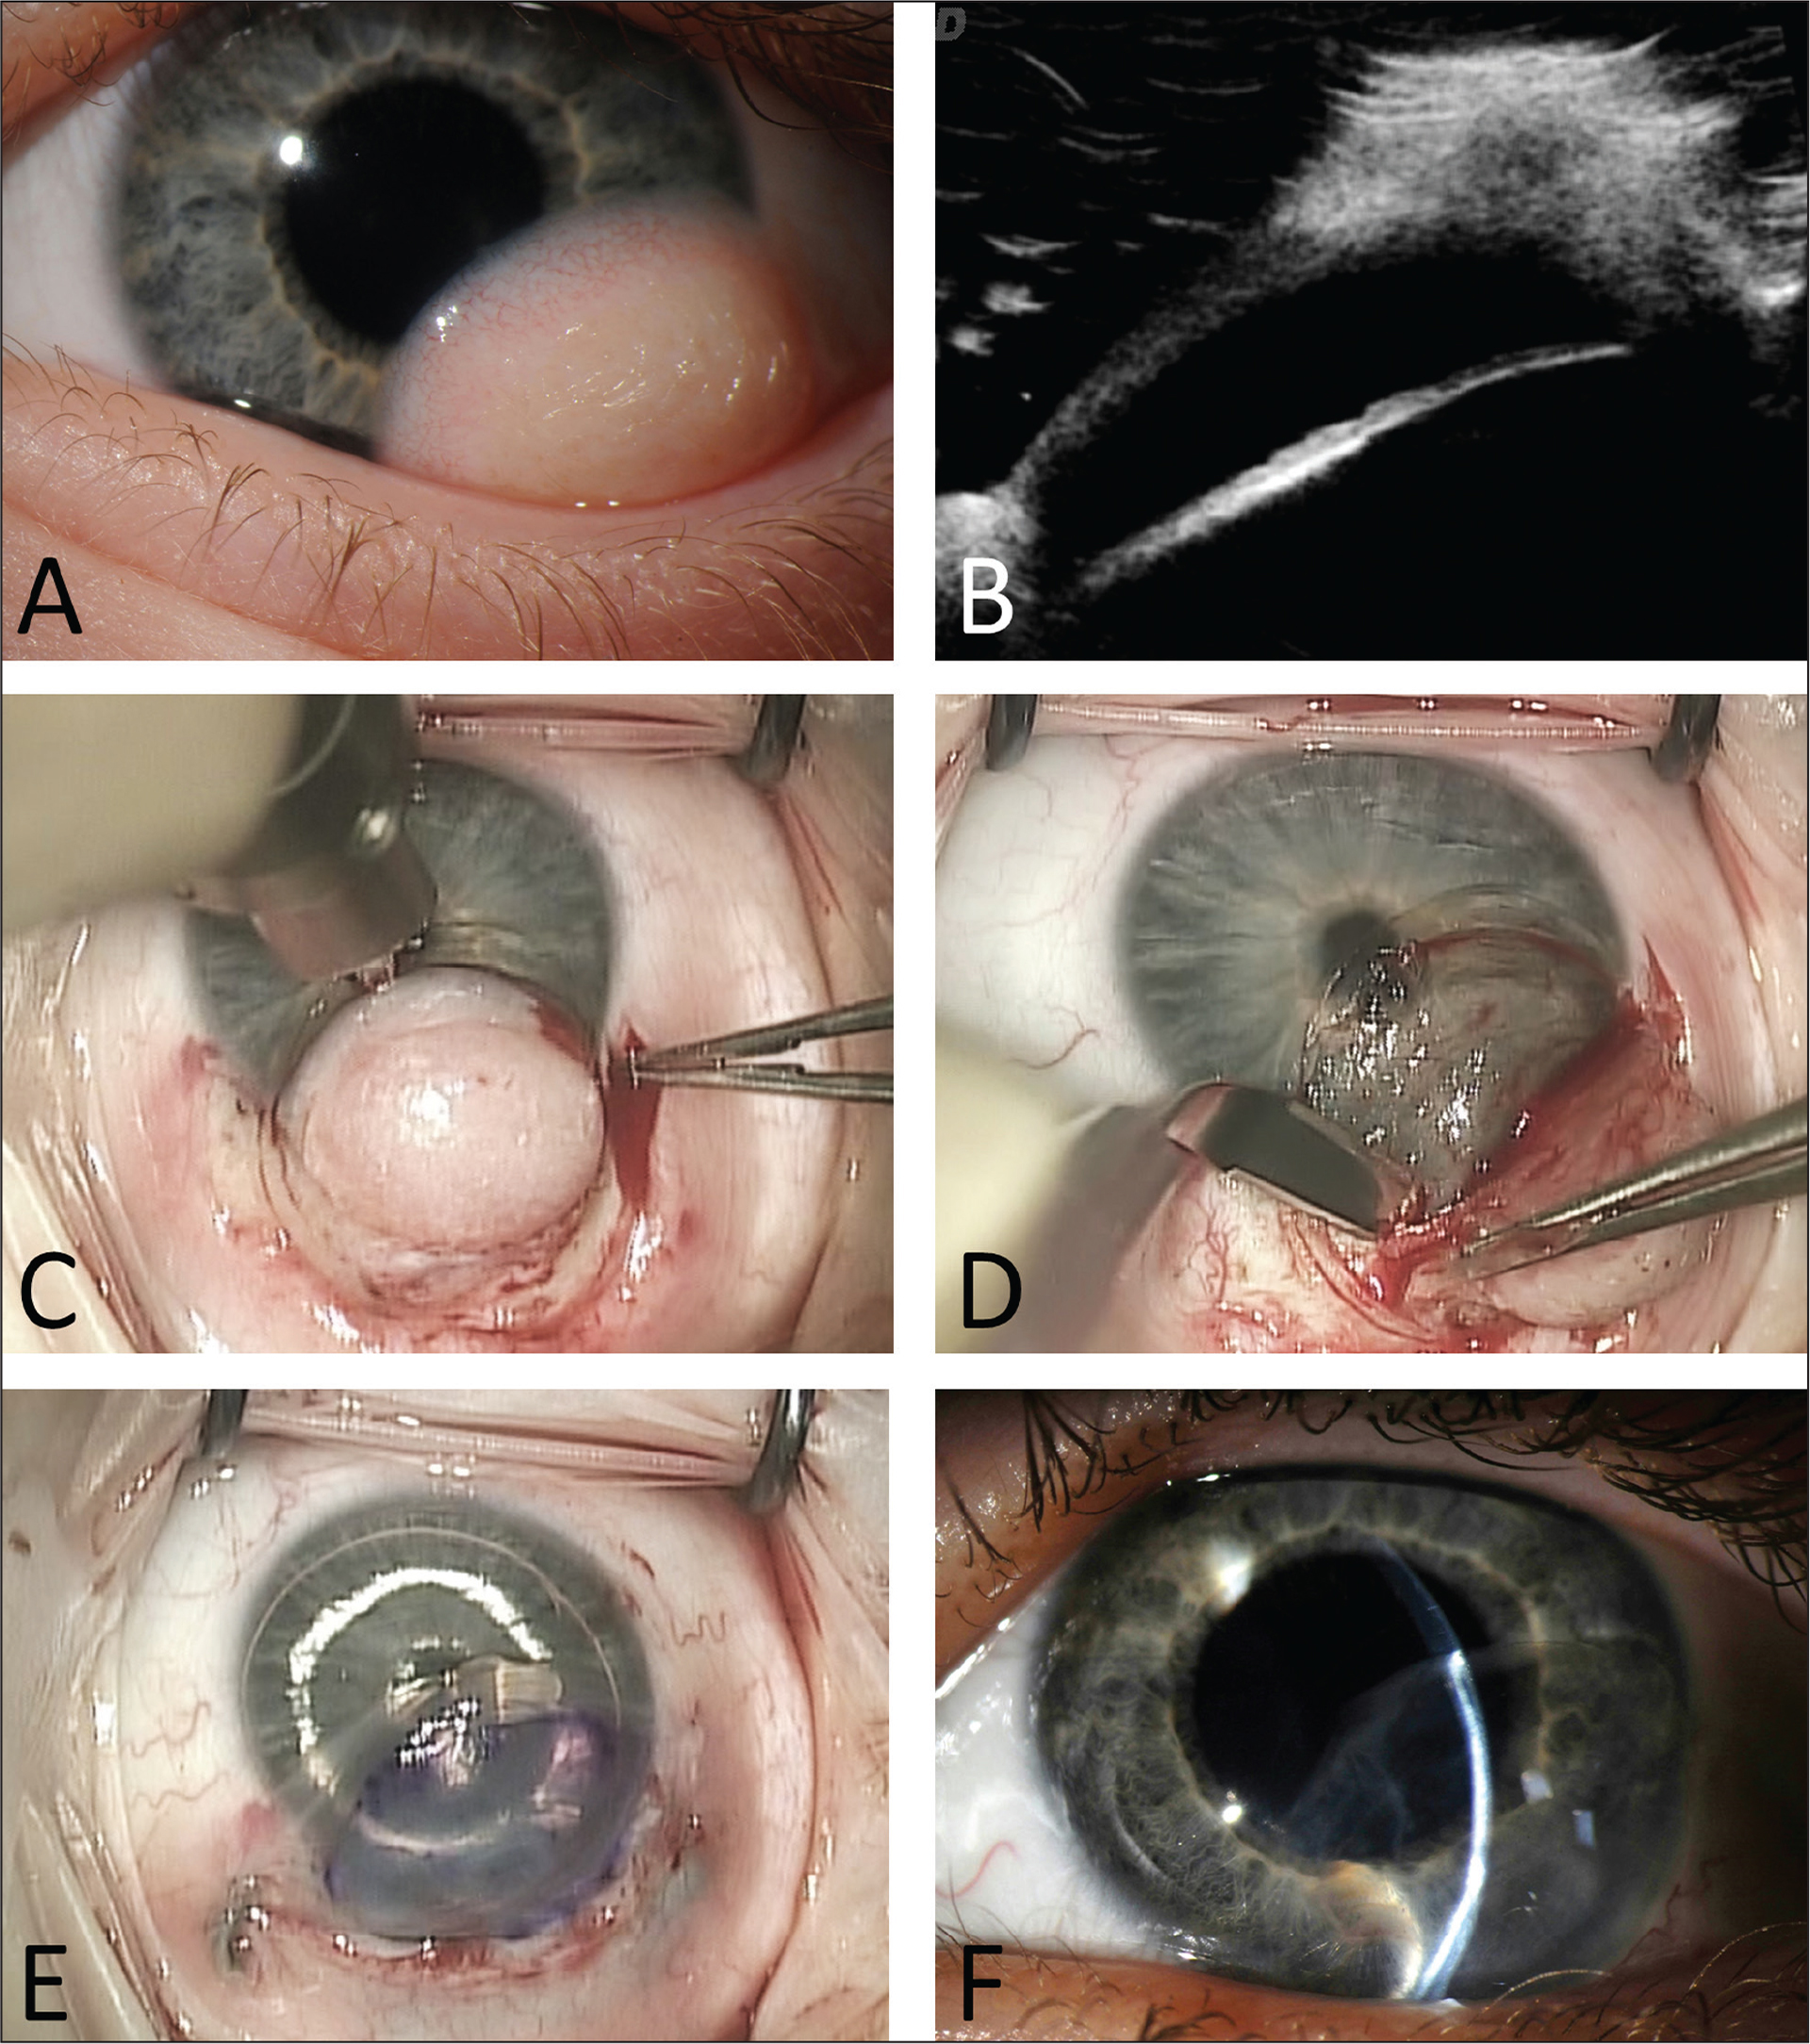 (A) Inferotemporal growth on the left eye before surgery. (B) Ultrasound biomicroscopy showing extension of lesion into the corneal stroma. (C) A guarded diamond blade was used to mark the corneal border of the dermoid and enable start of dissection. (D) Lamellar keratectomy to remove the entire dermoid. (E) Graft after attachment with fibrin glue. (F) Slit-lamp examination of the graft 10 weeks after the surgery shows the graft integrating well, with slight haze and no edema.